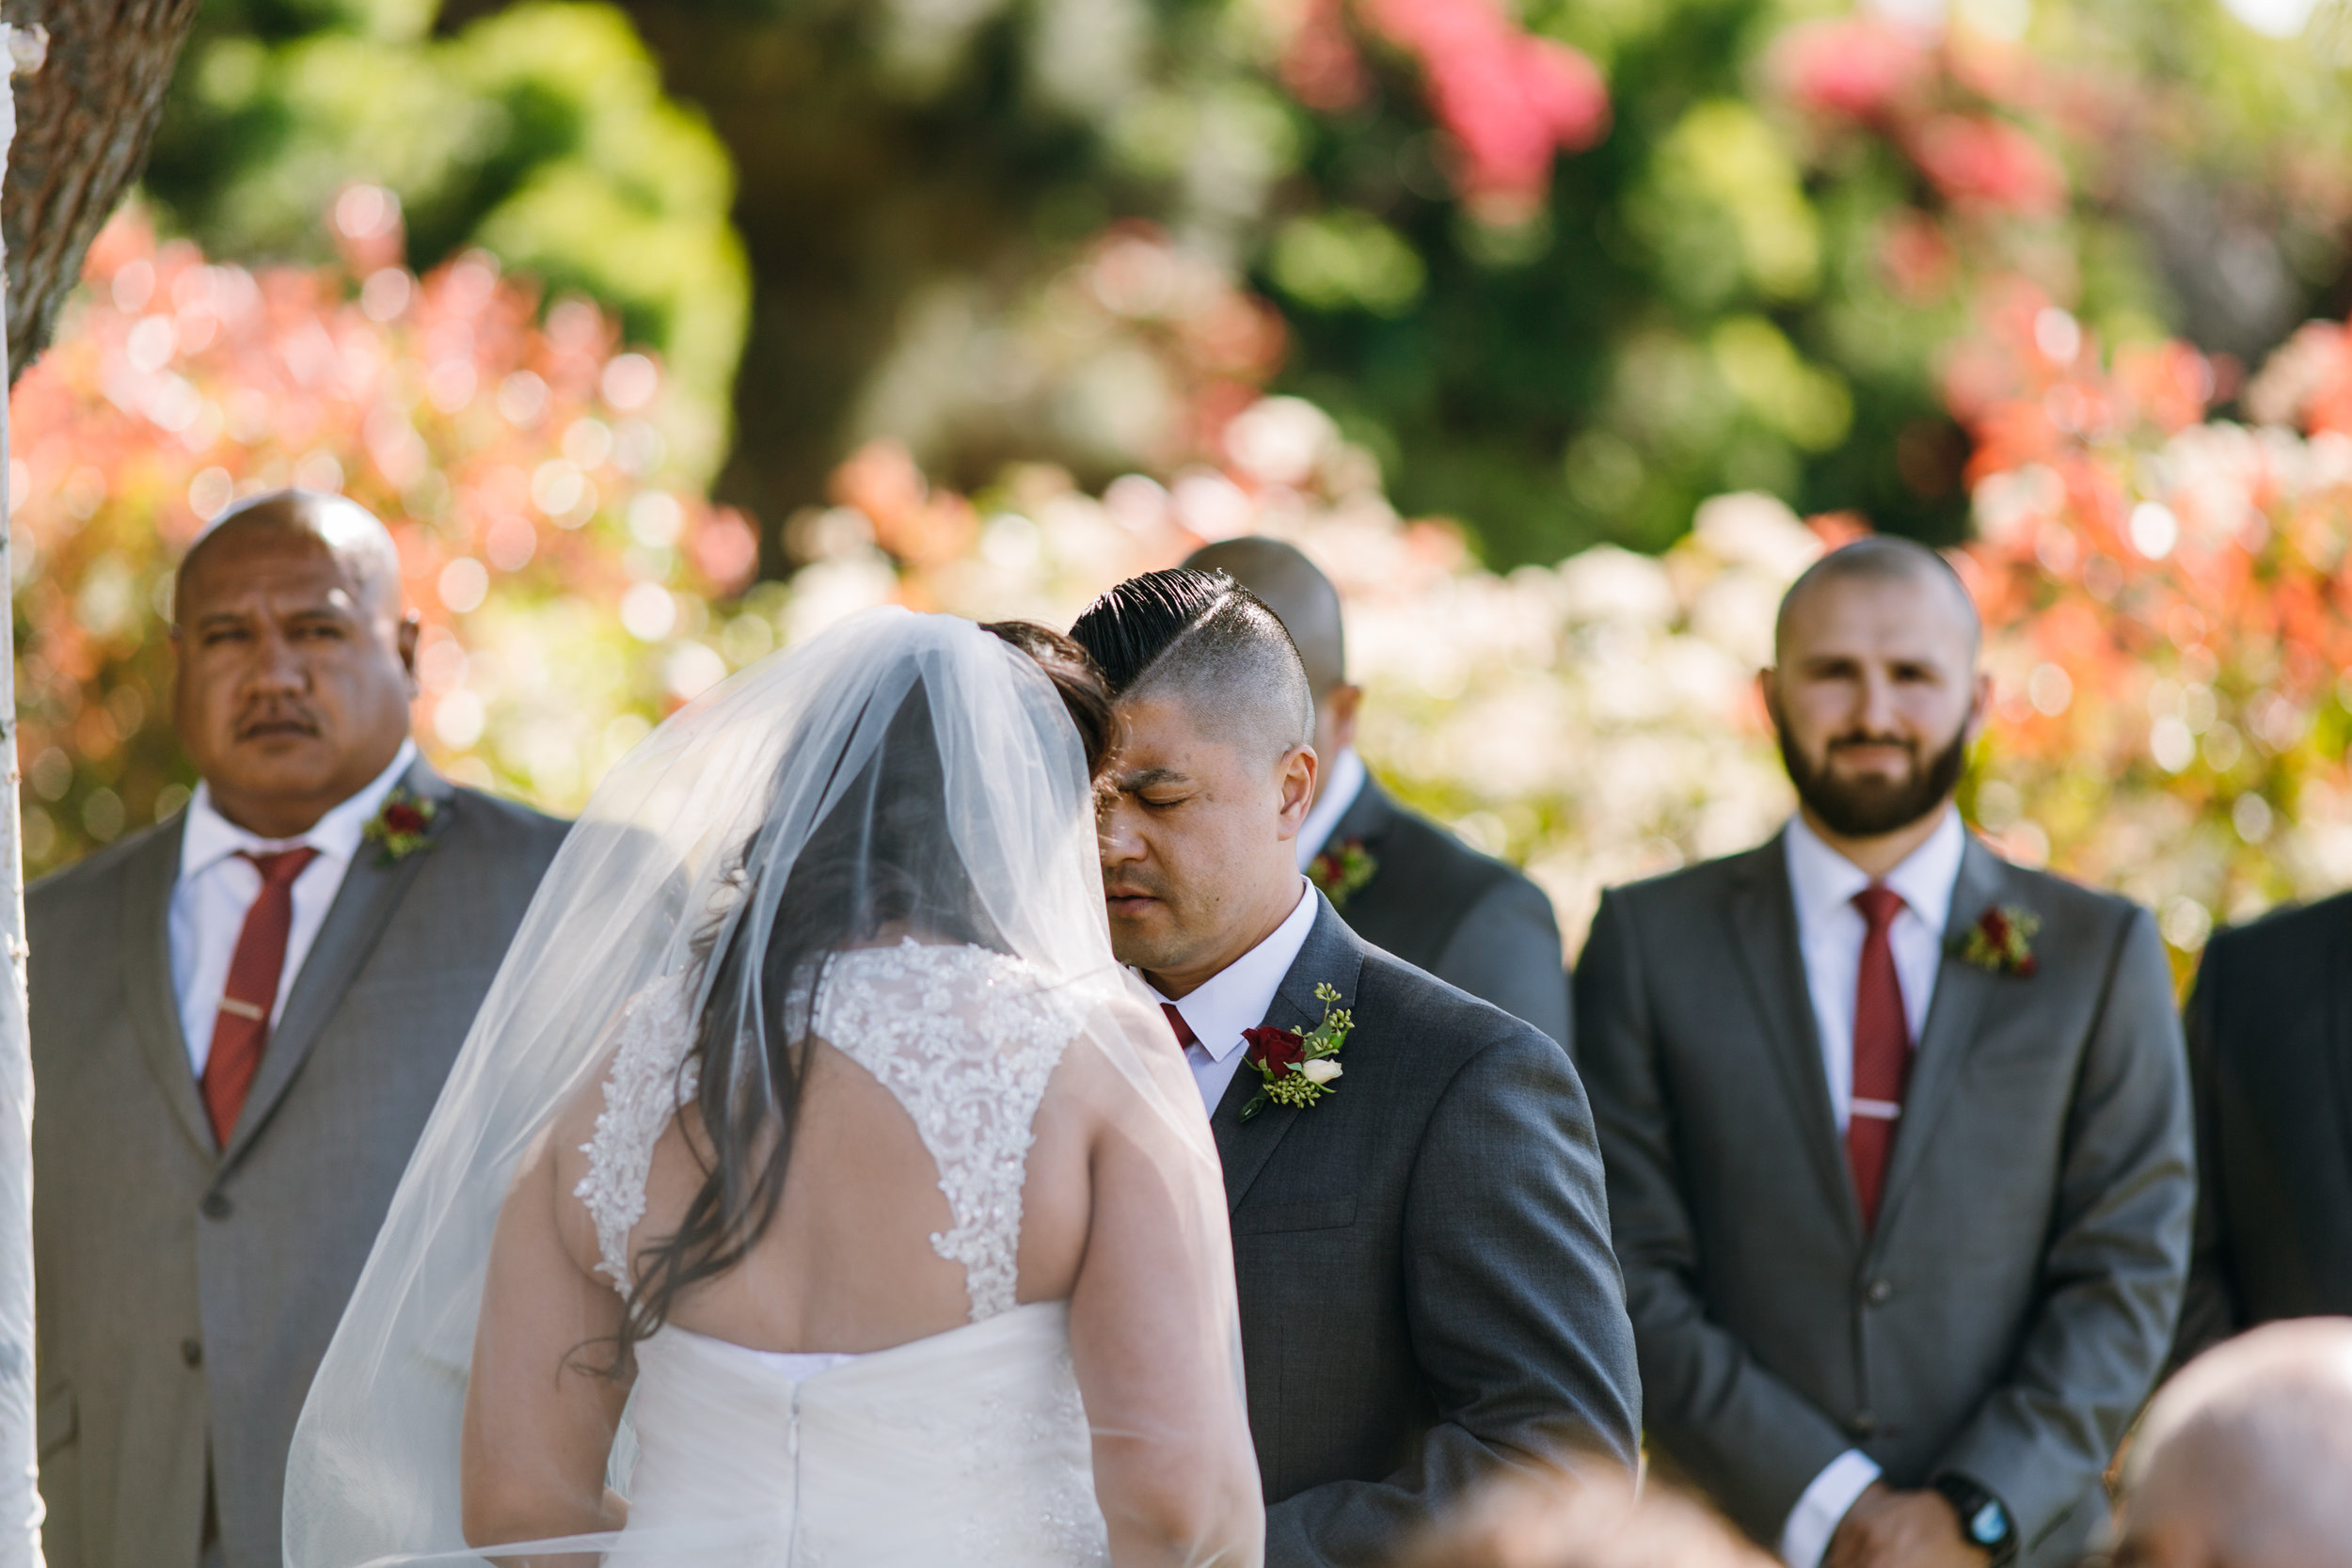 KaraNixon-GriffithHouse-Anaheim-Wedding-13.jpg